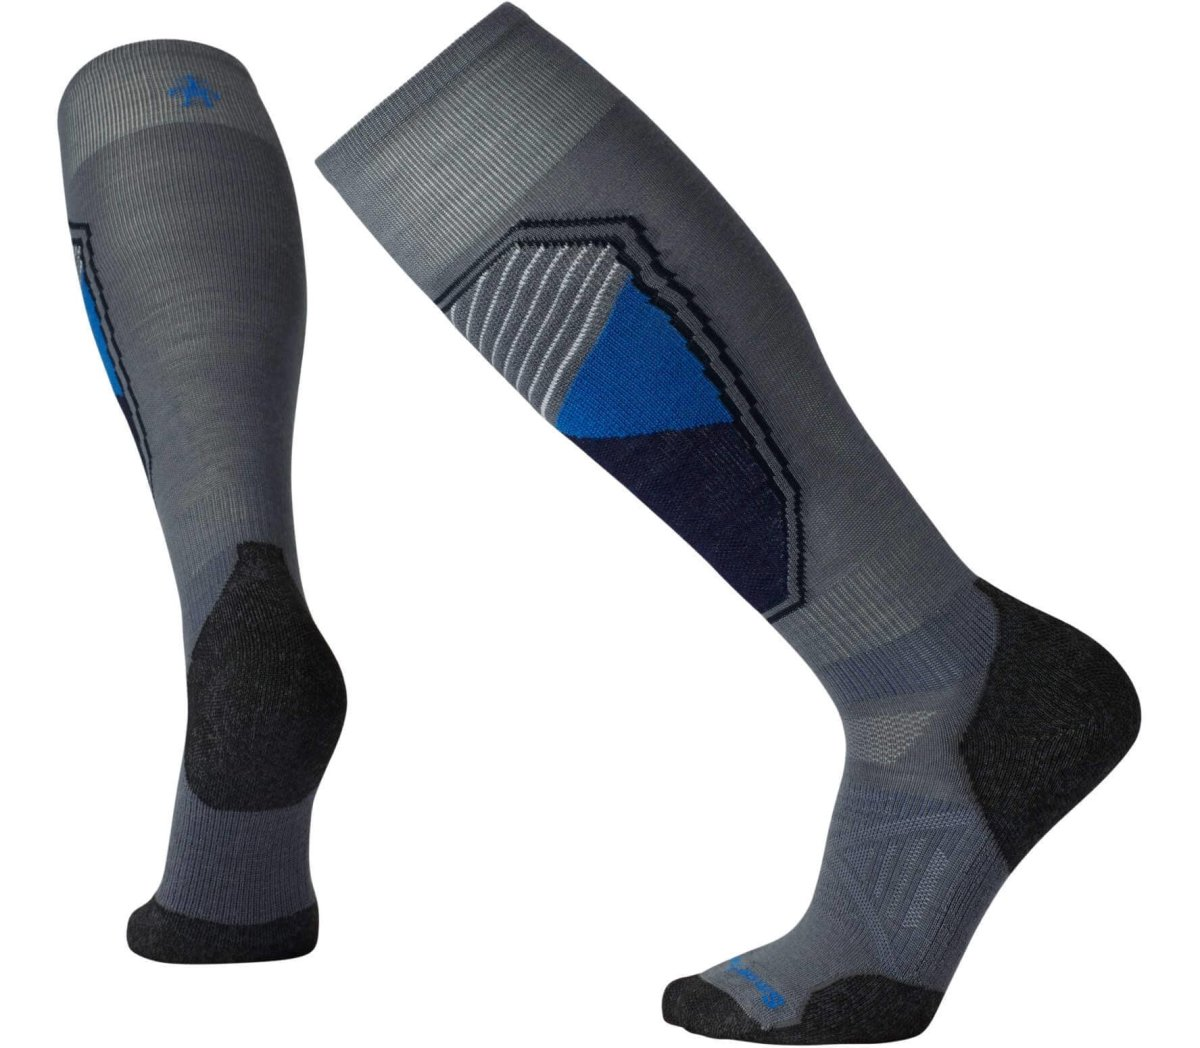 Носки Smartwool PhD Ski Light Pattern (Graphite) SW 15035.018-L SW 15035.018-M